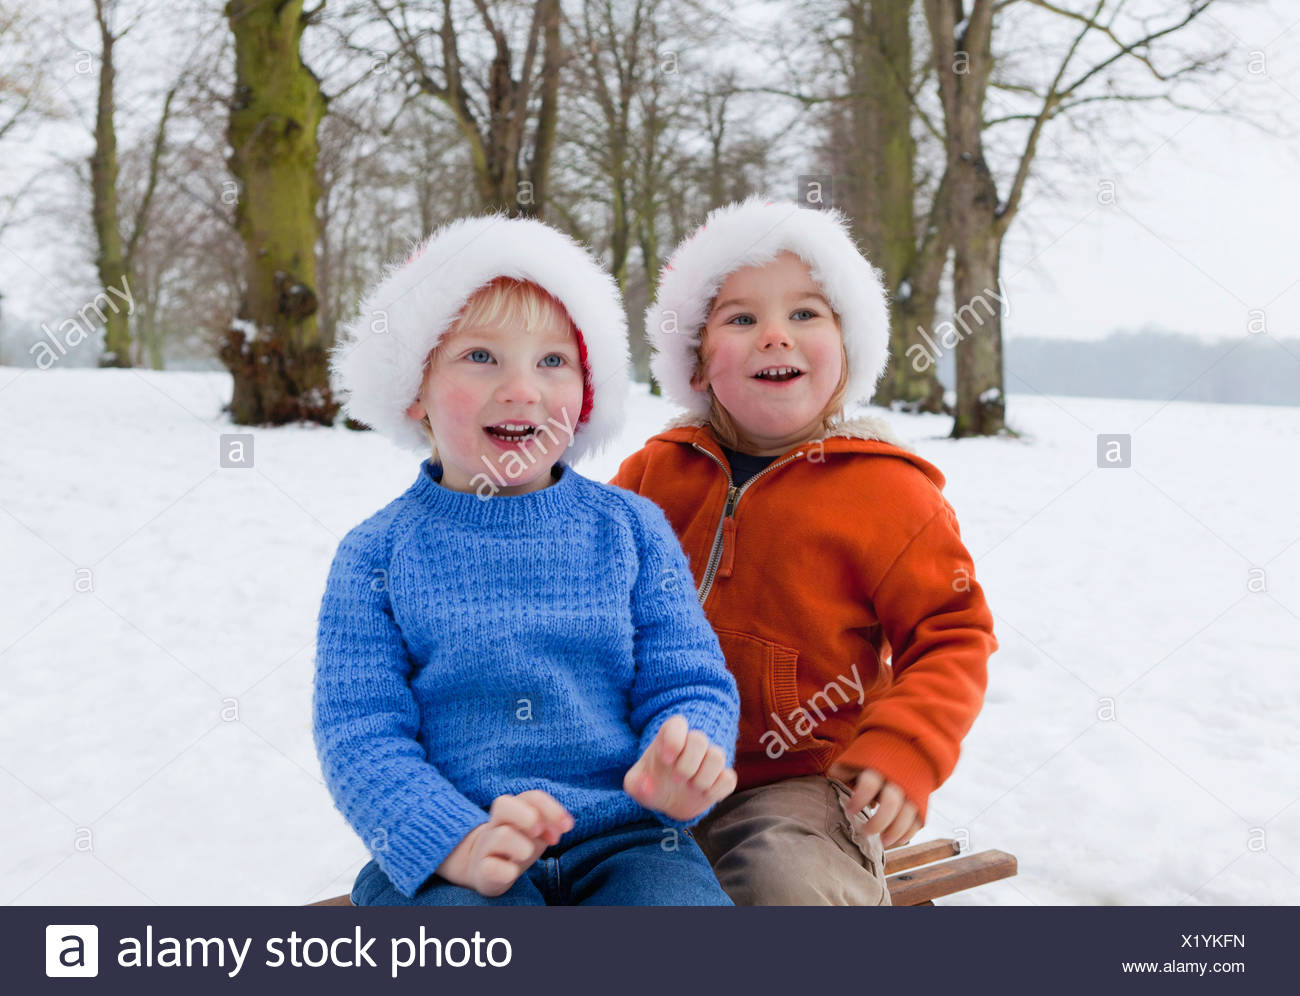 Two boys wearing fluffy hats in the snow - Stock Image